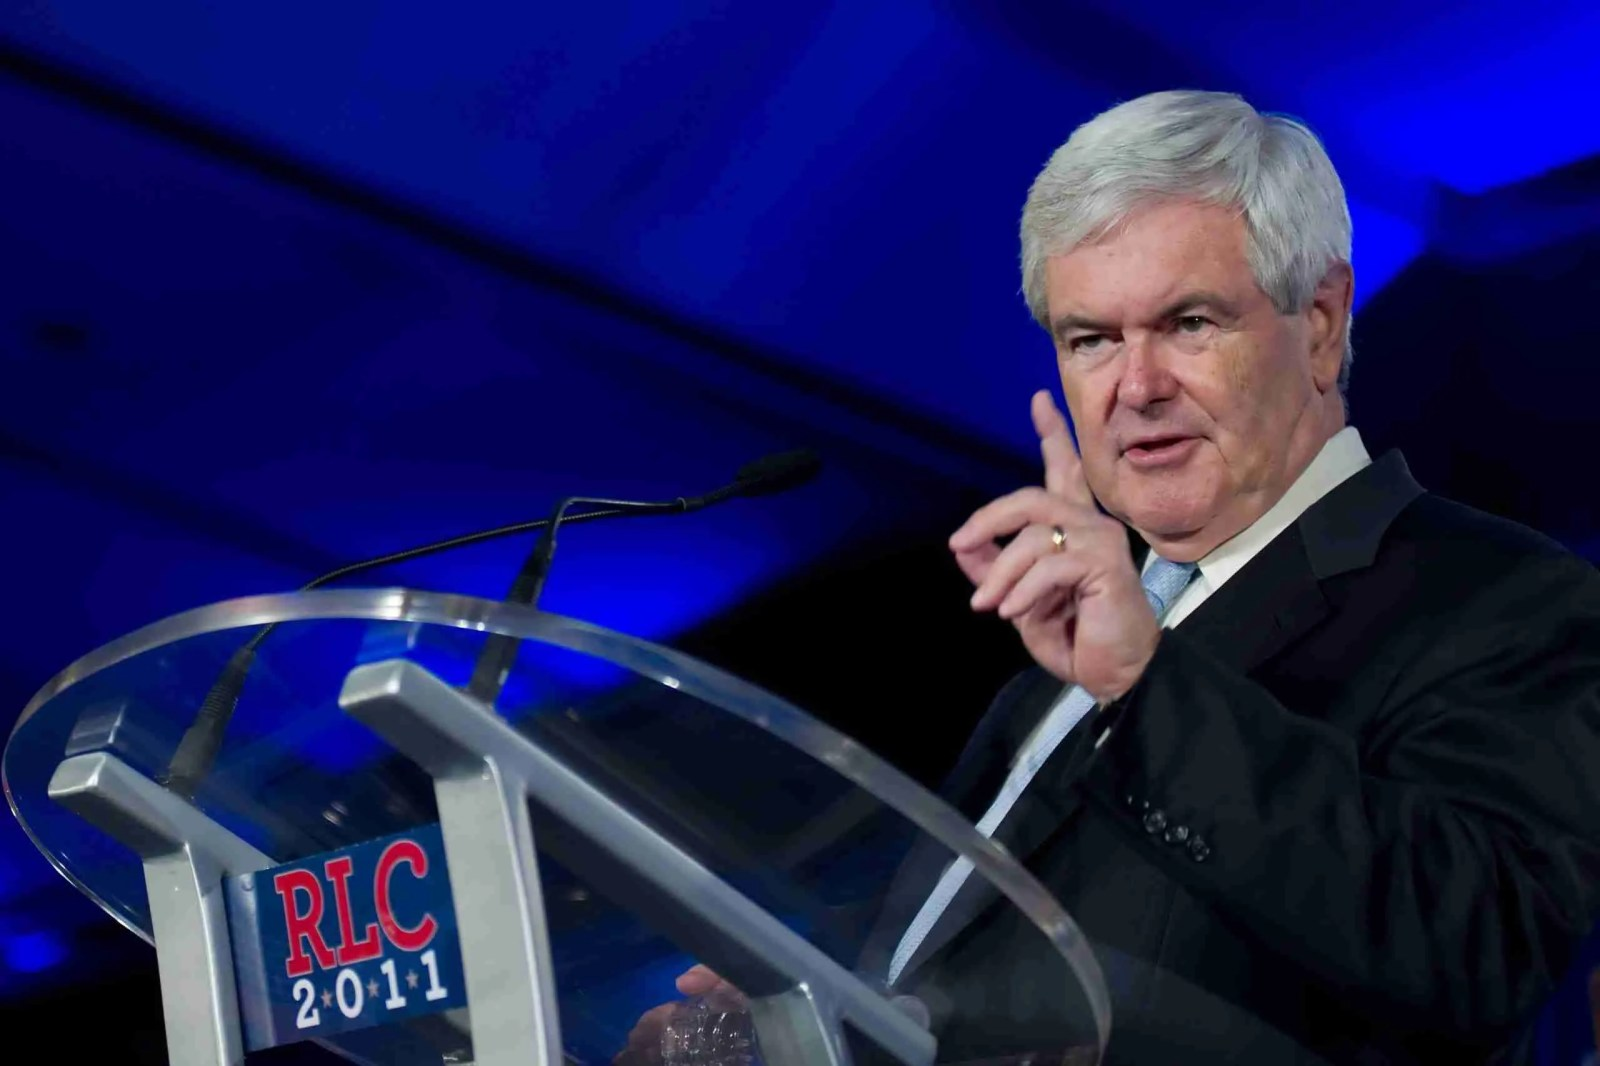 Newt Gingrich Buries Nancy Pelosi after State of the Union - But Should He? 7